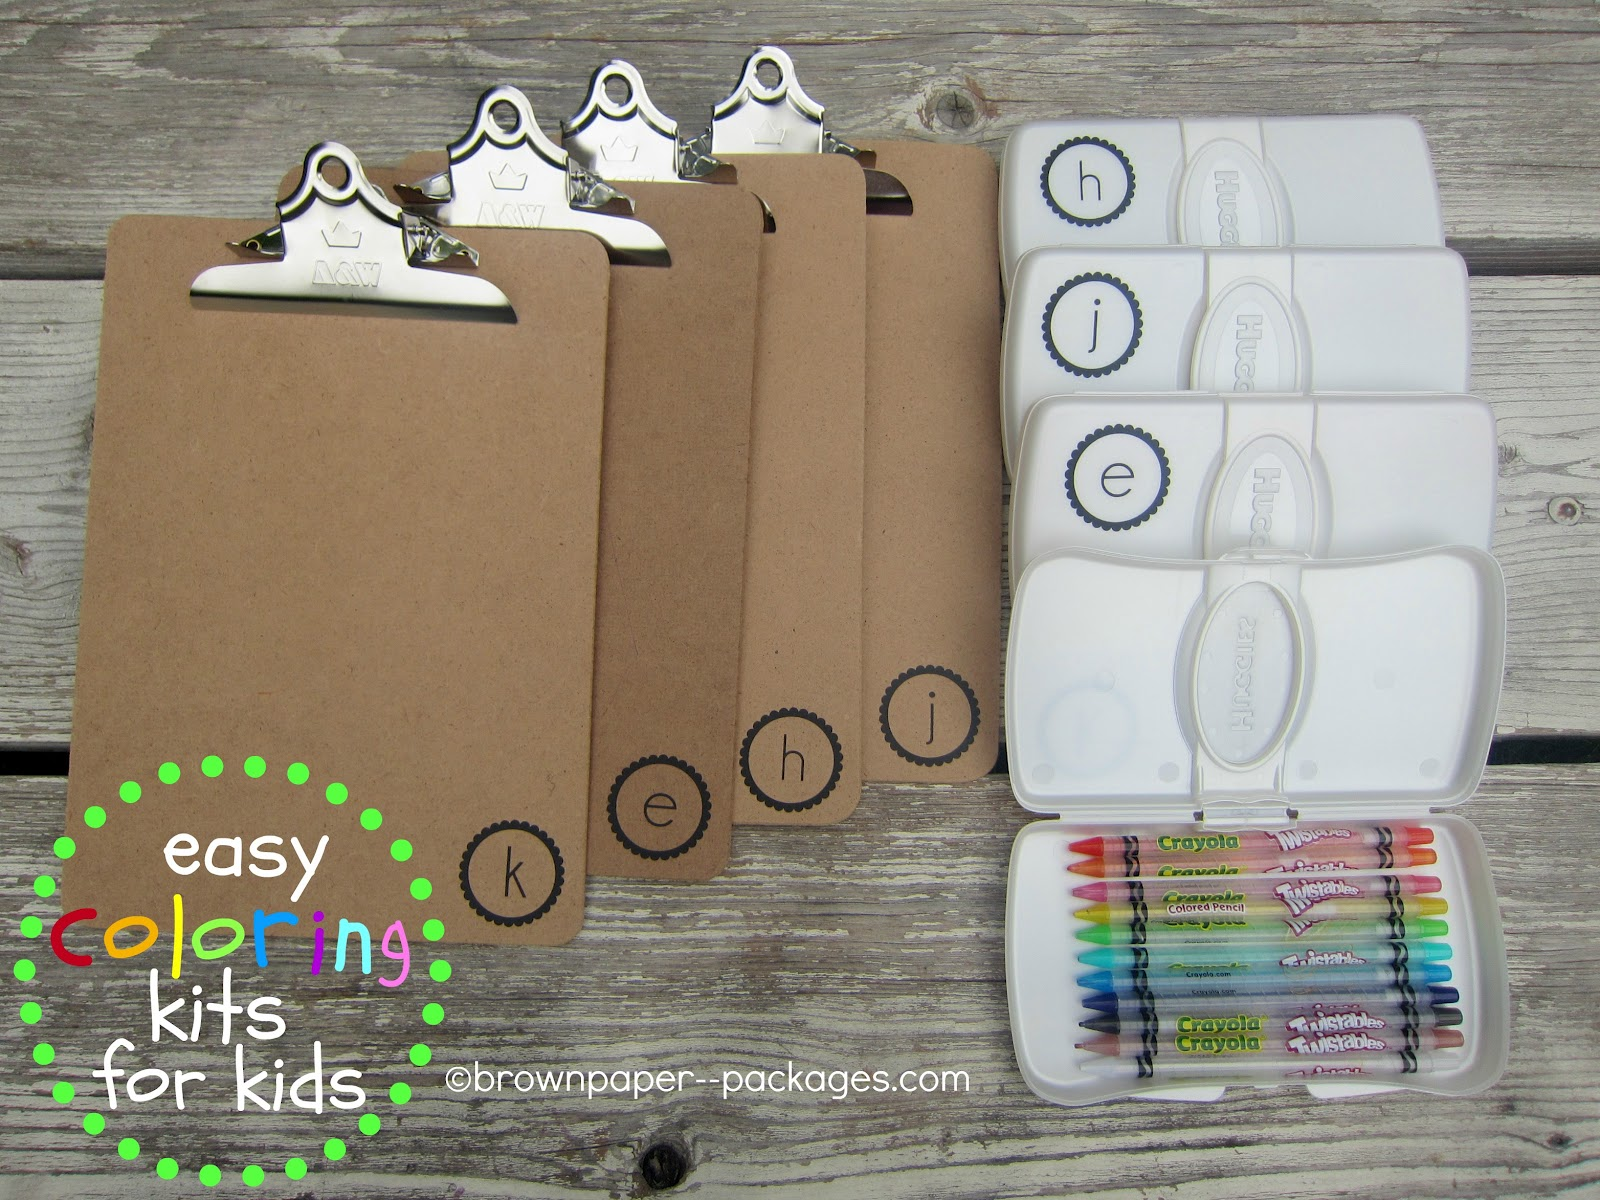 clipboards + wipes cases = easy coloring kits for kids} - Simply ...